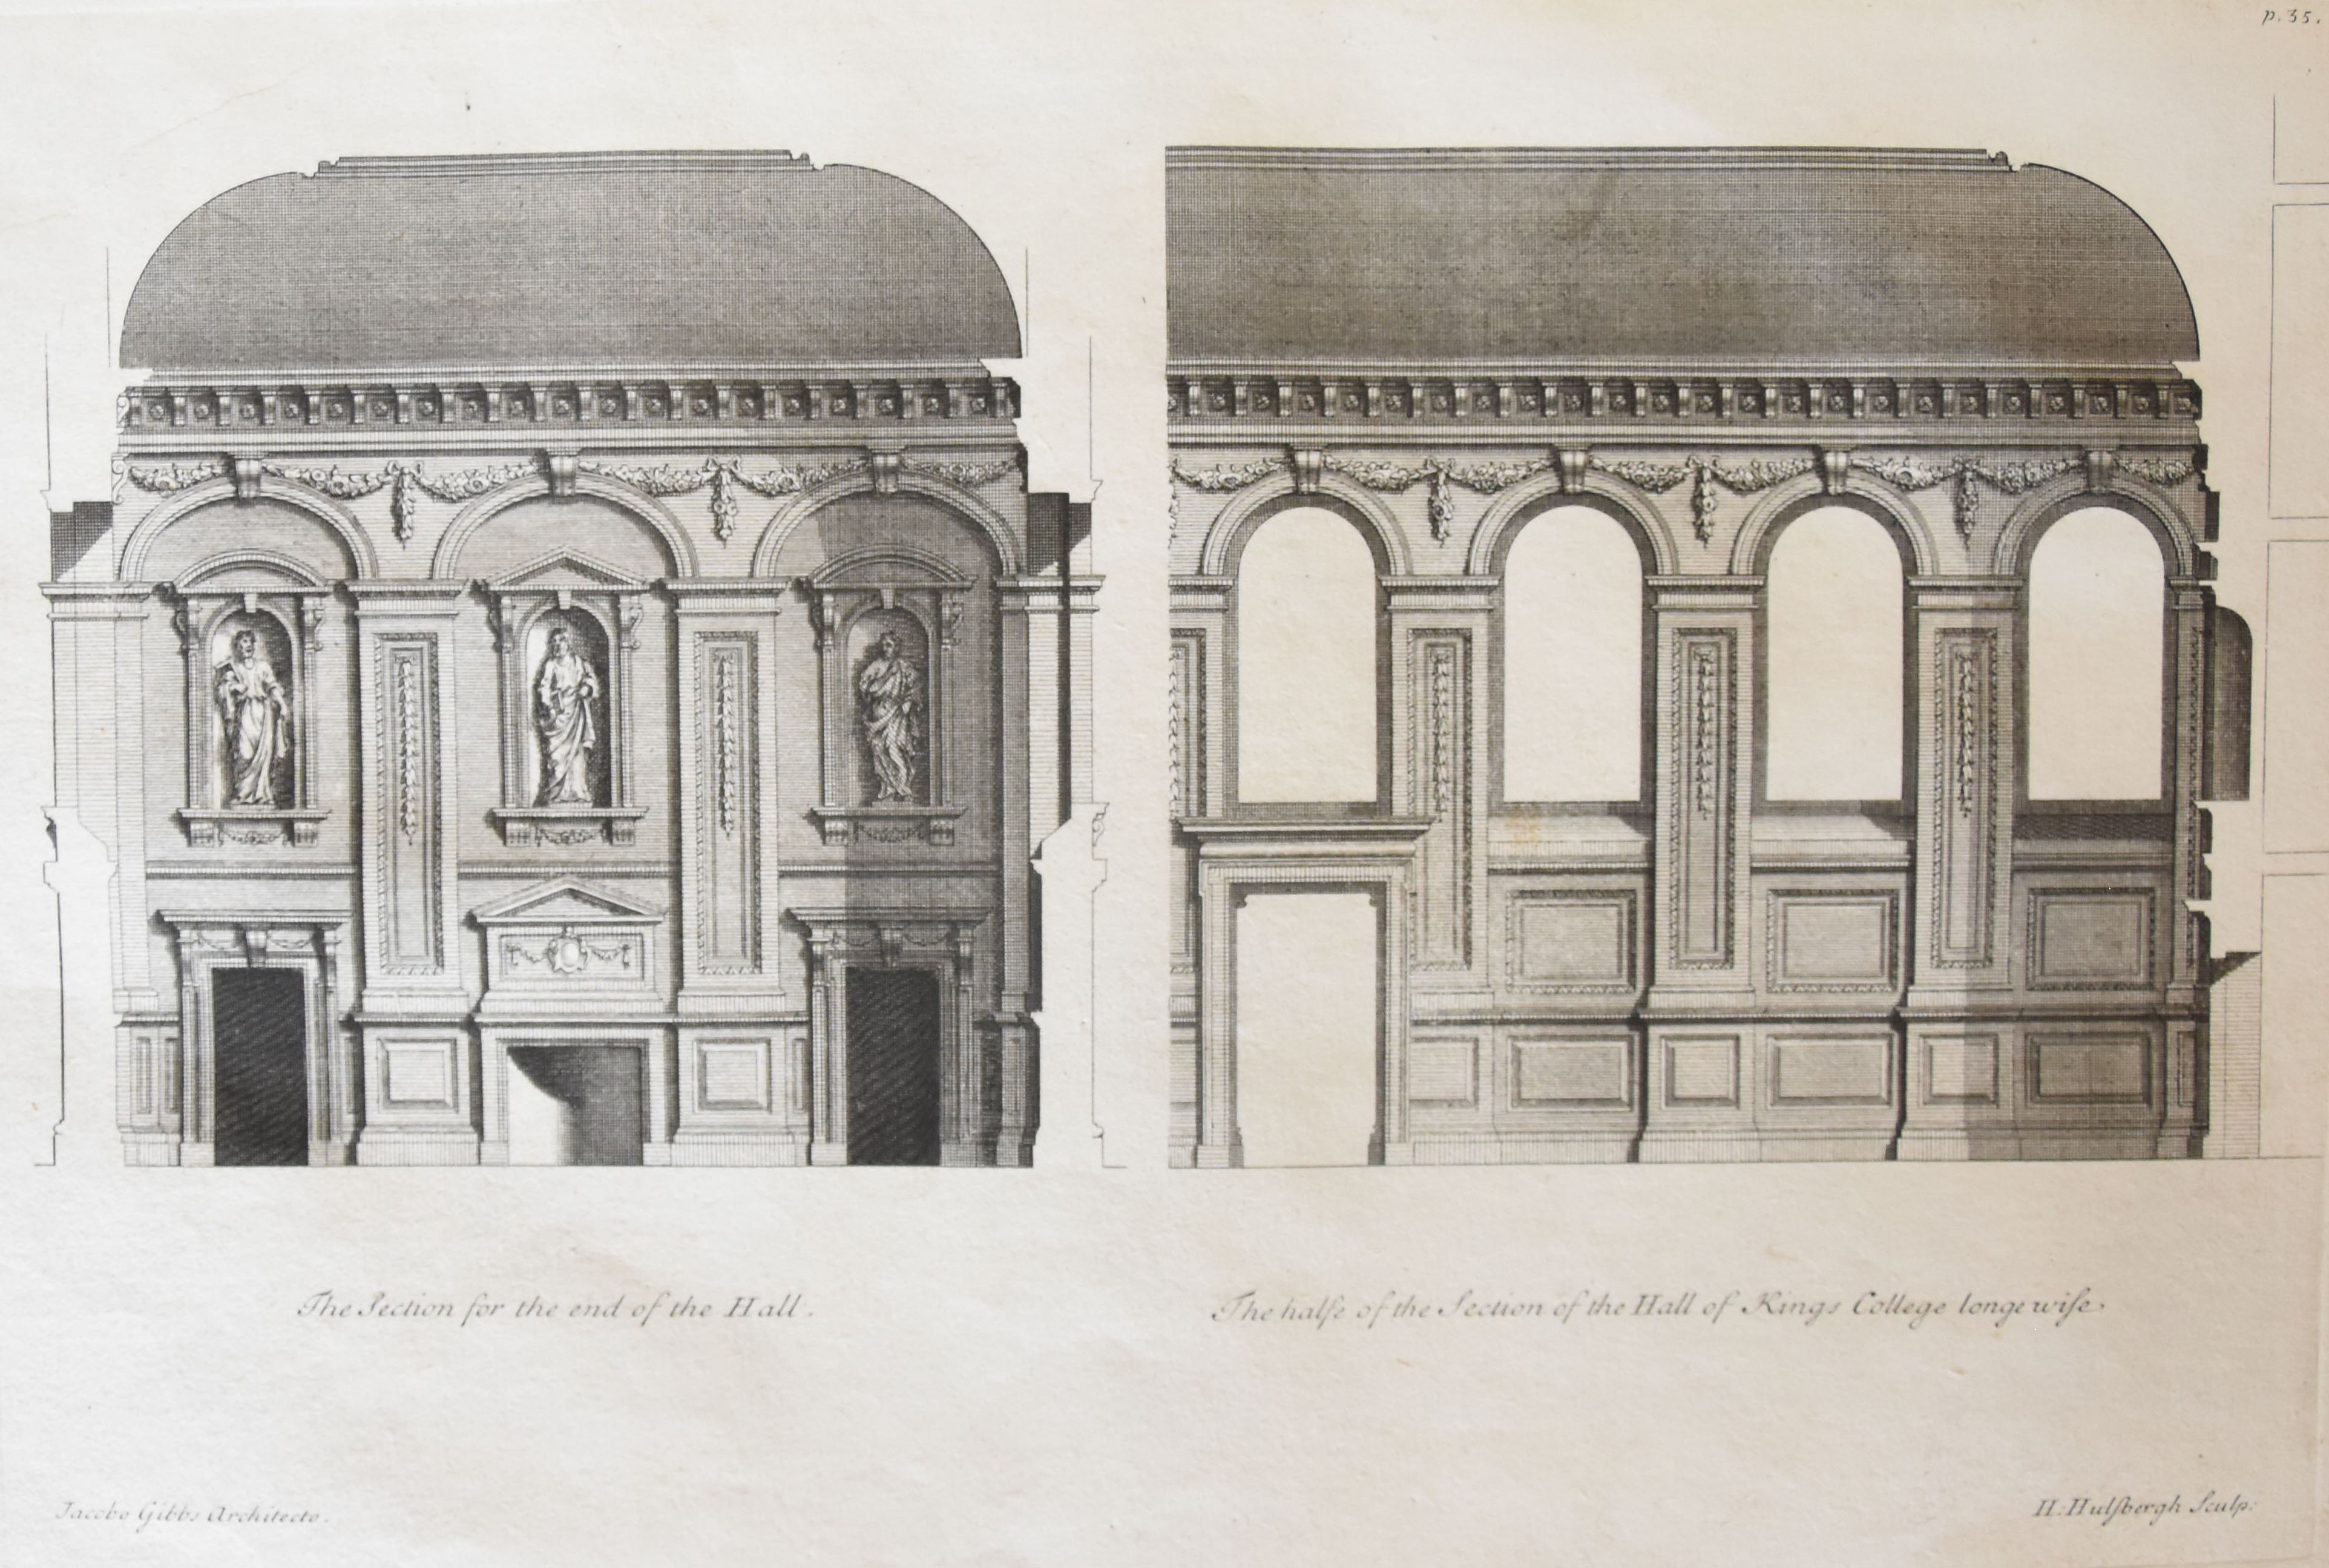 'The Sections of the Hall, which is 40 feet wide, 80 feet long and 40 feet high, to be finish'd in Stucco'. [James Gibbs' Book of Architecture, plate XXXV]